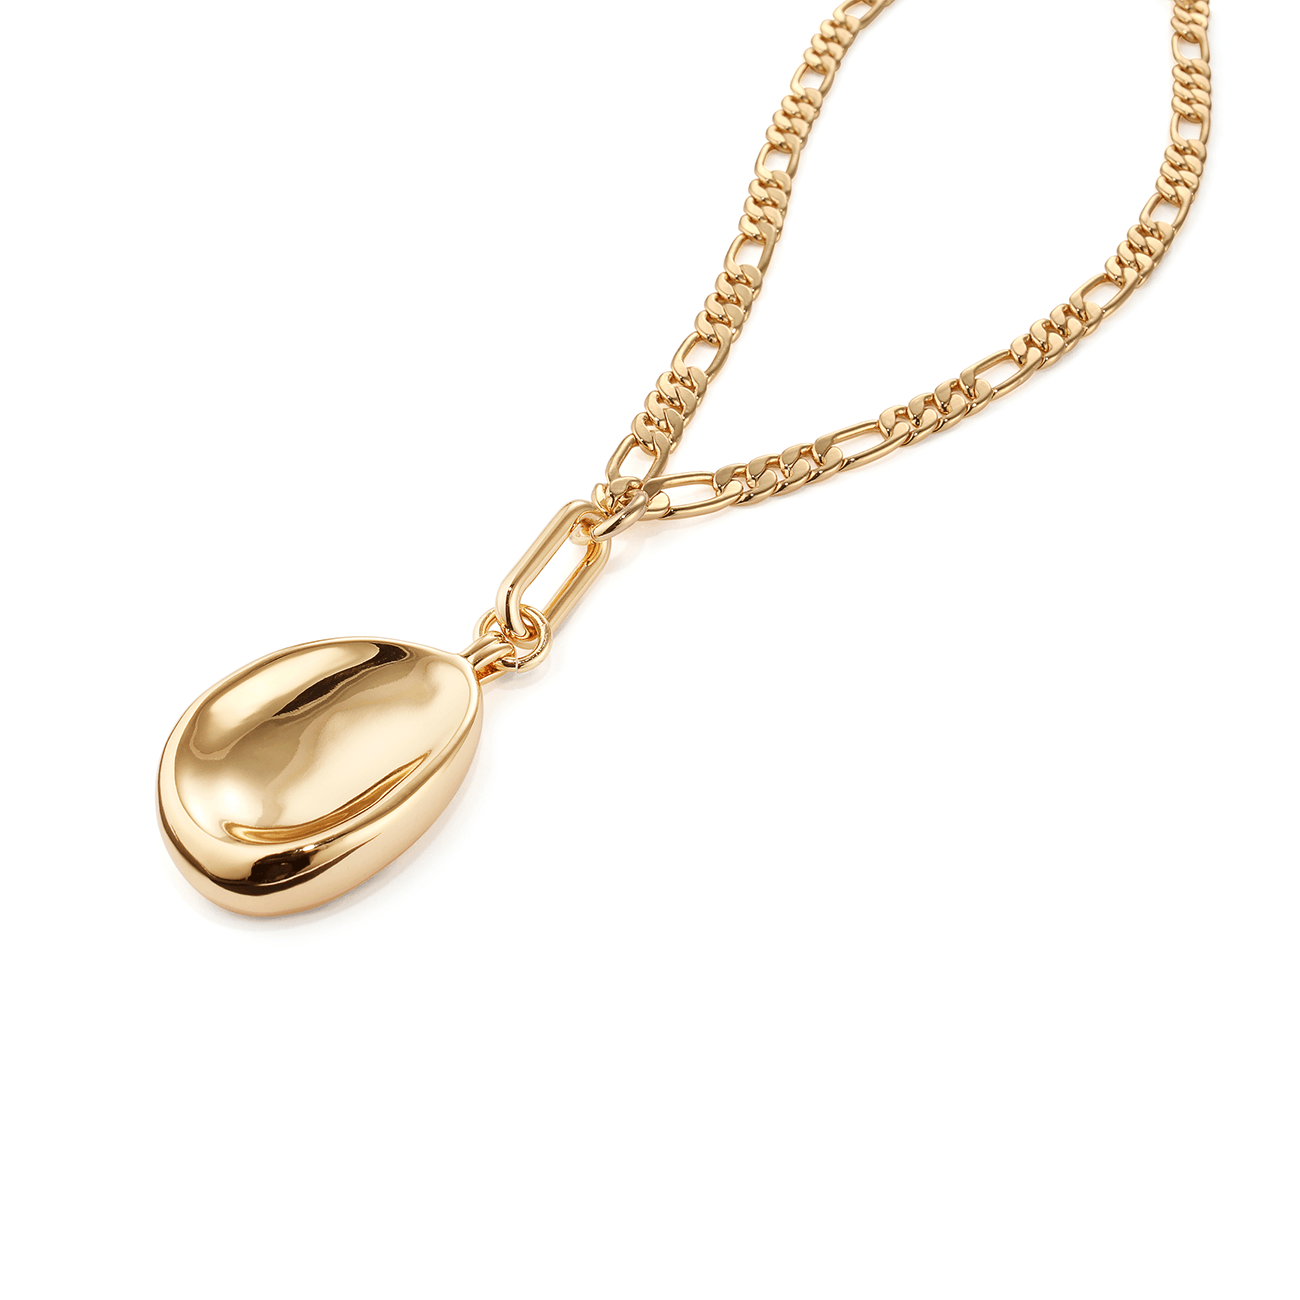 JENNY BIRD - MARIS NECKLACE IN GOLD